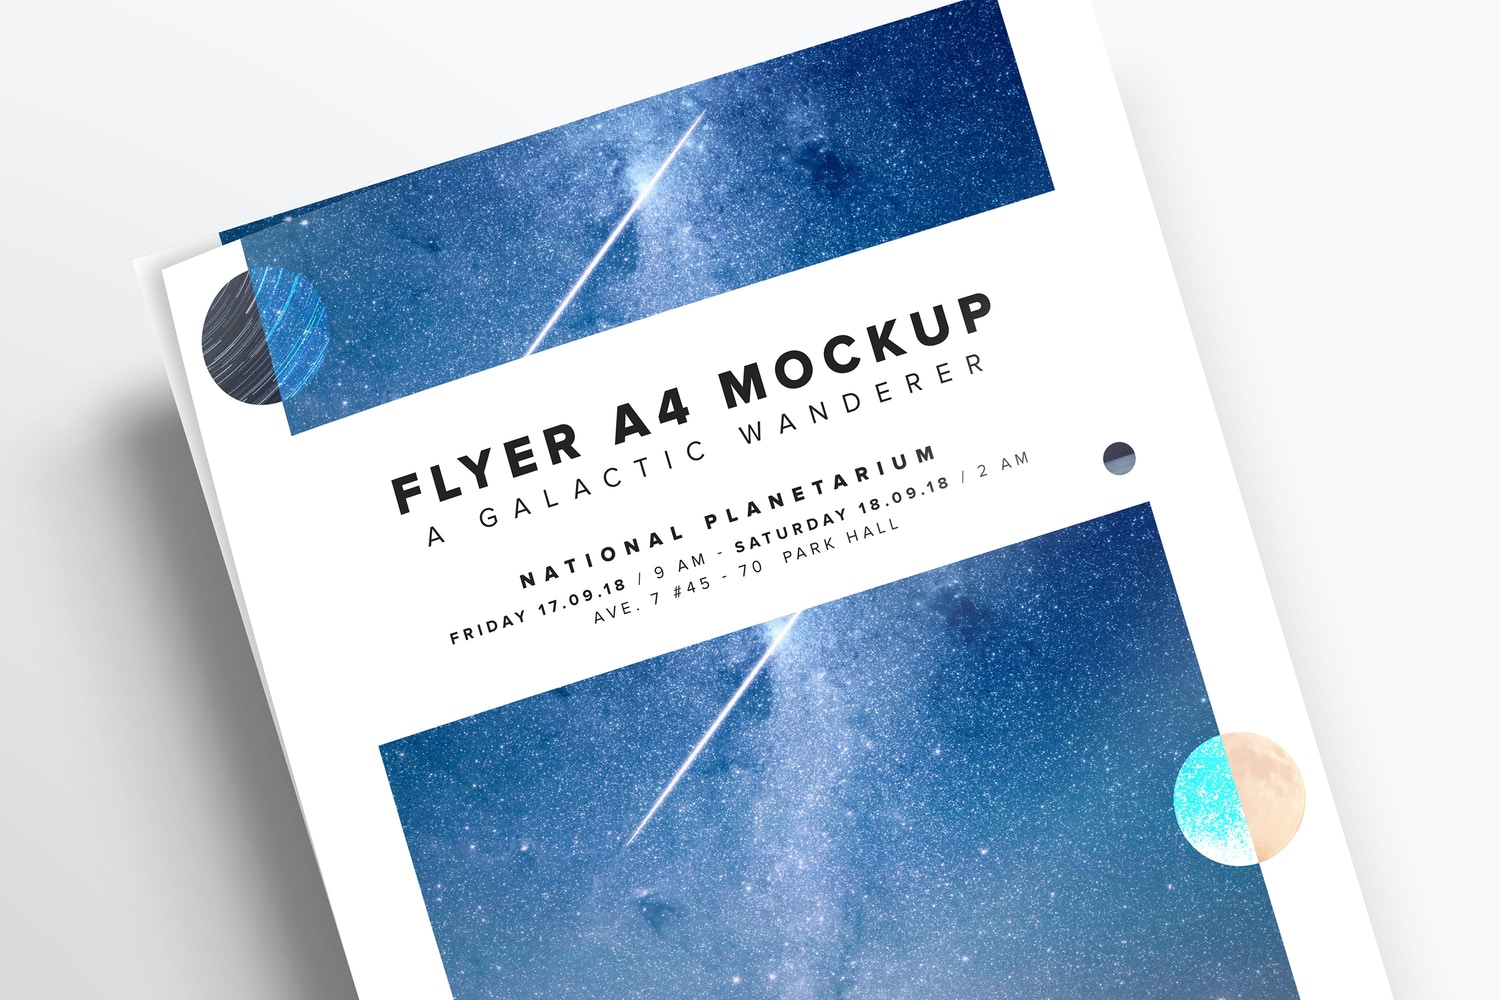 Flyer Close-Up Mockup by Original Mockups on Original Mockups